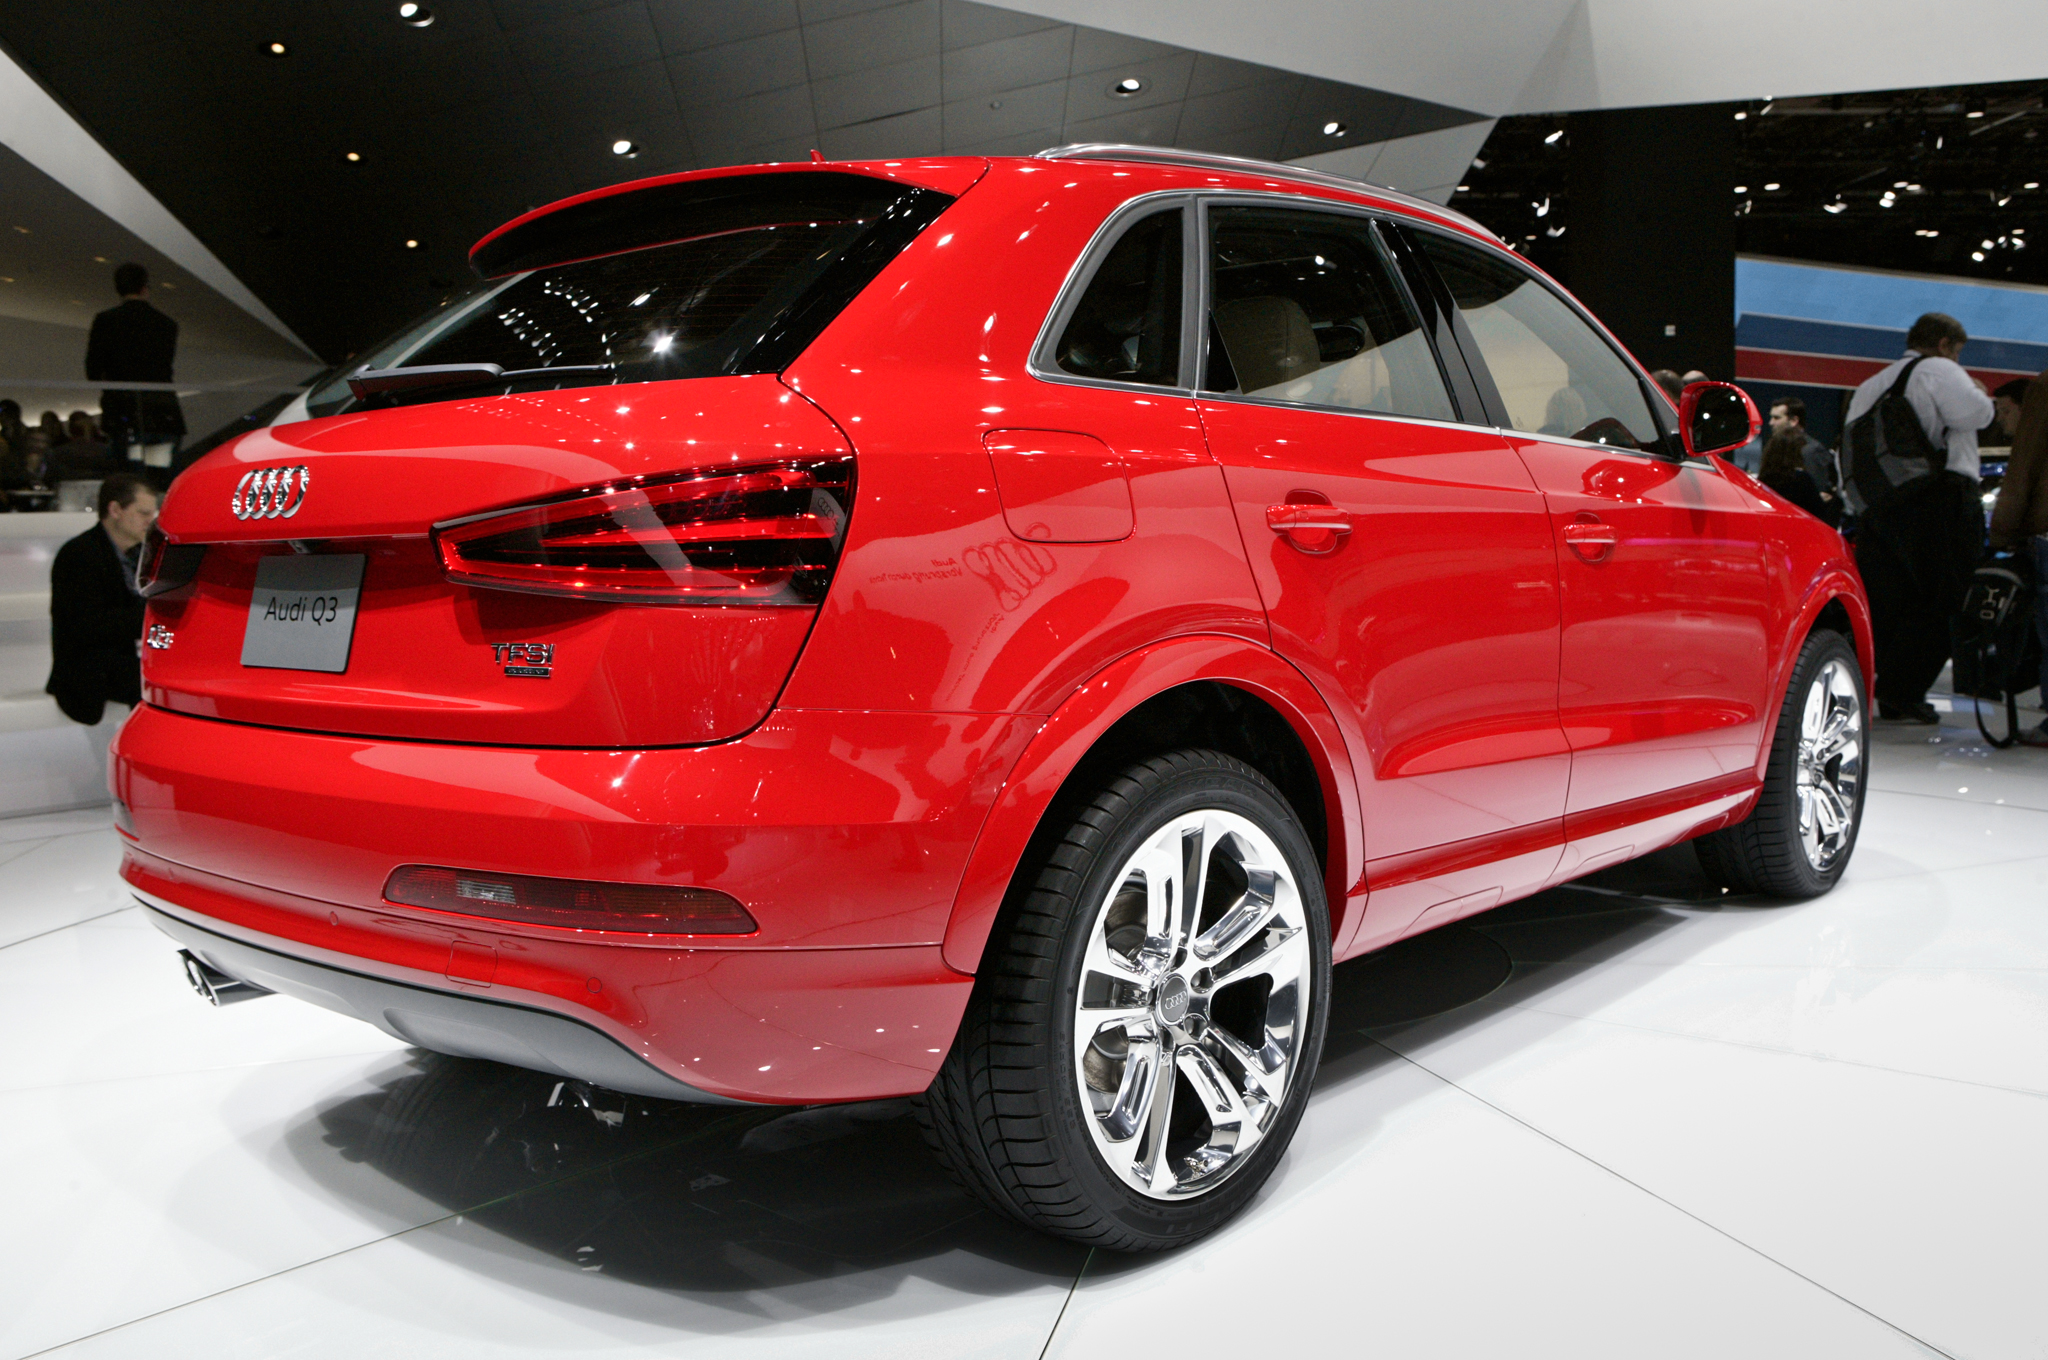 2015 Audi Q3 Red Rear View (Photo 14 of 21)